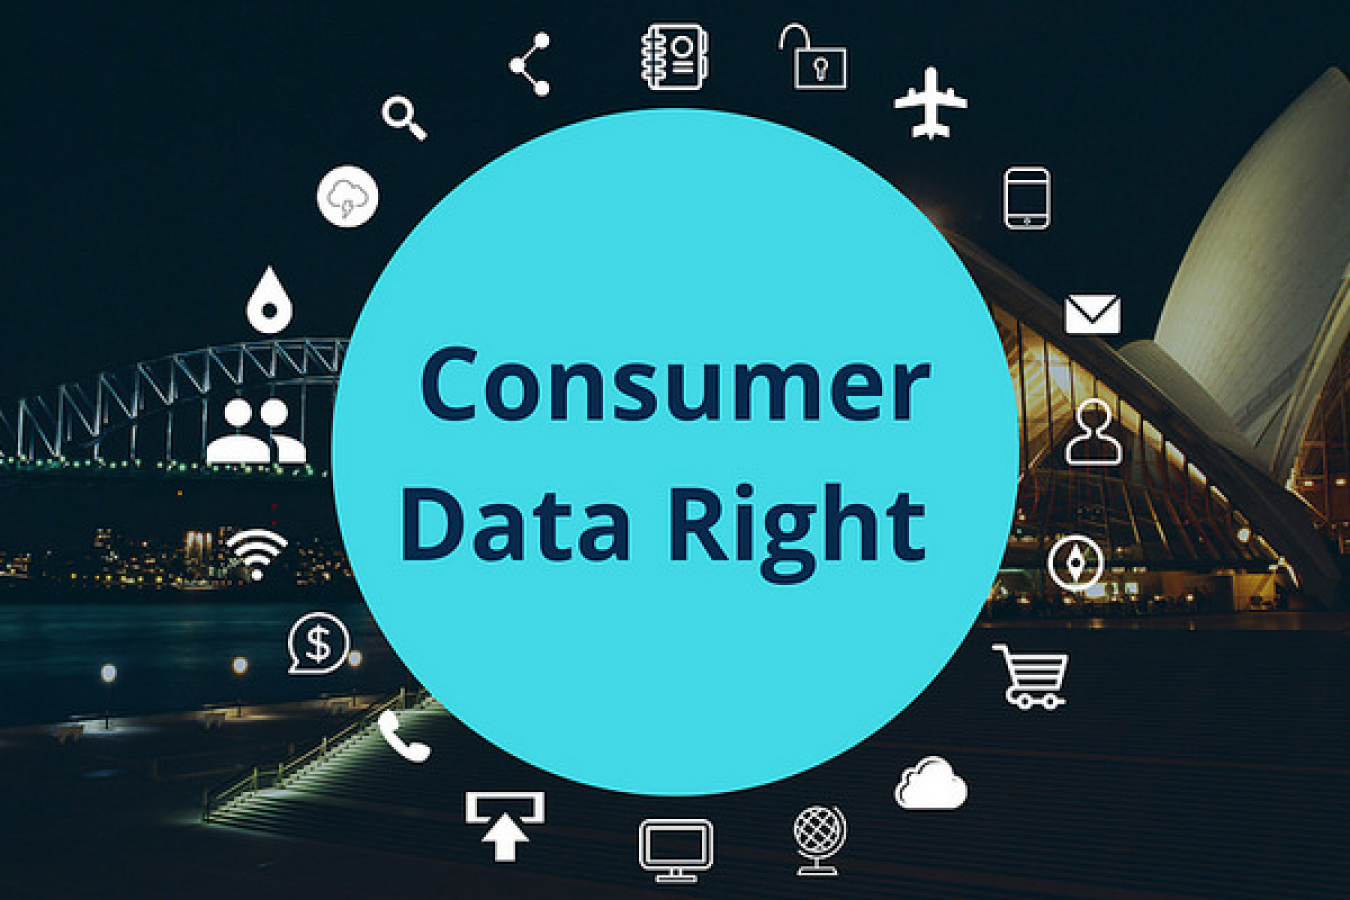 Consumer Data Right